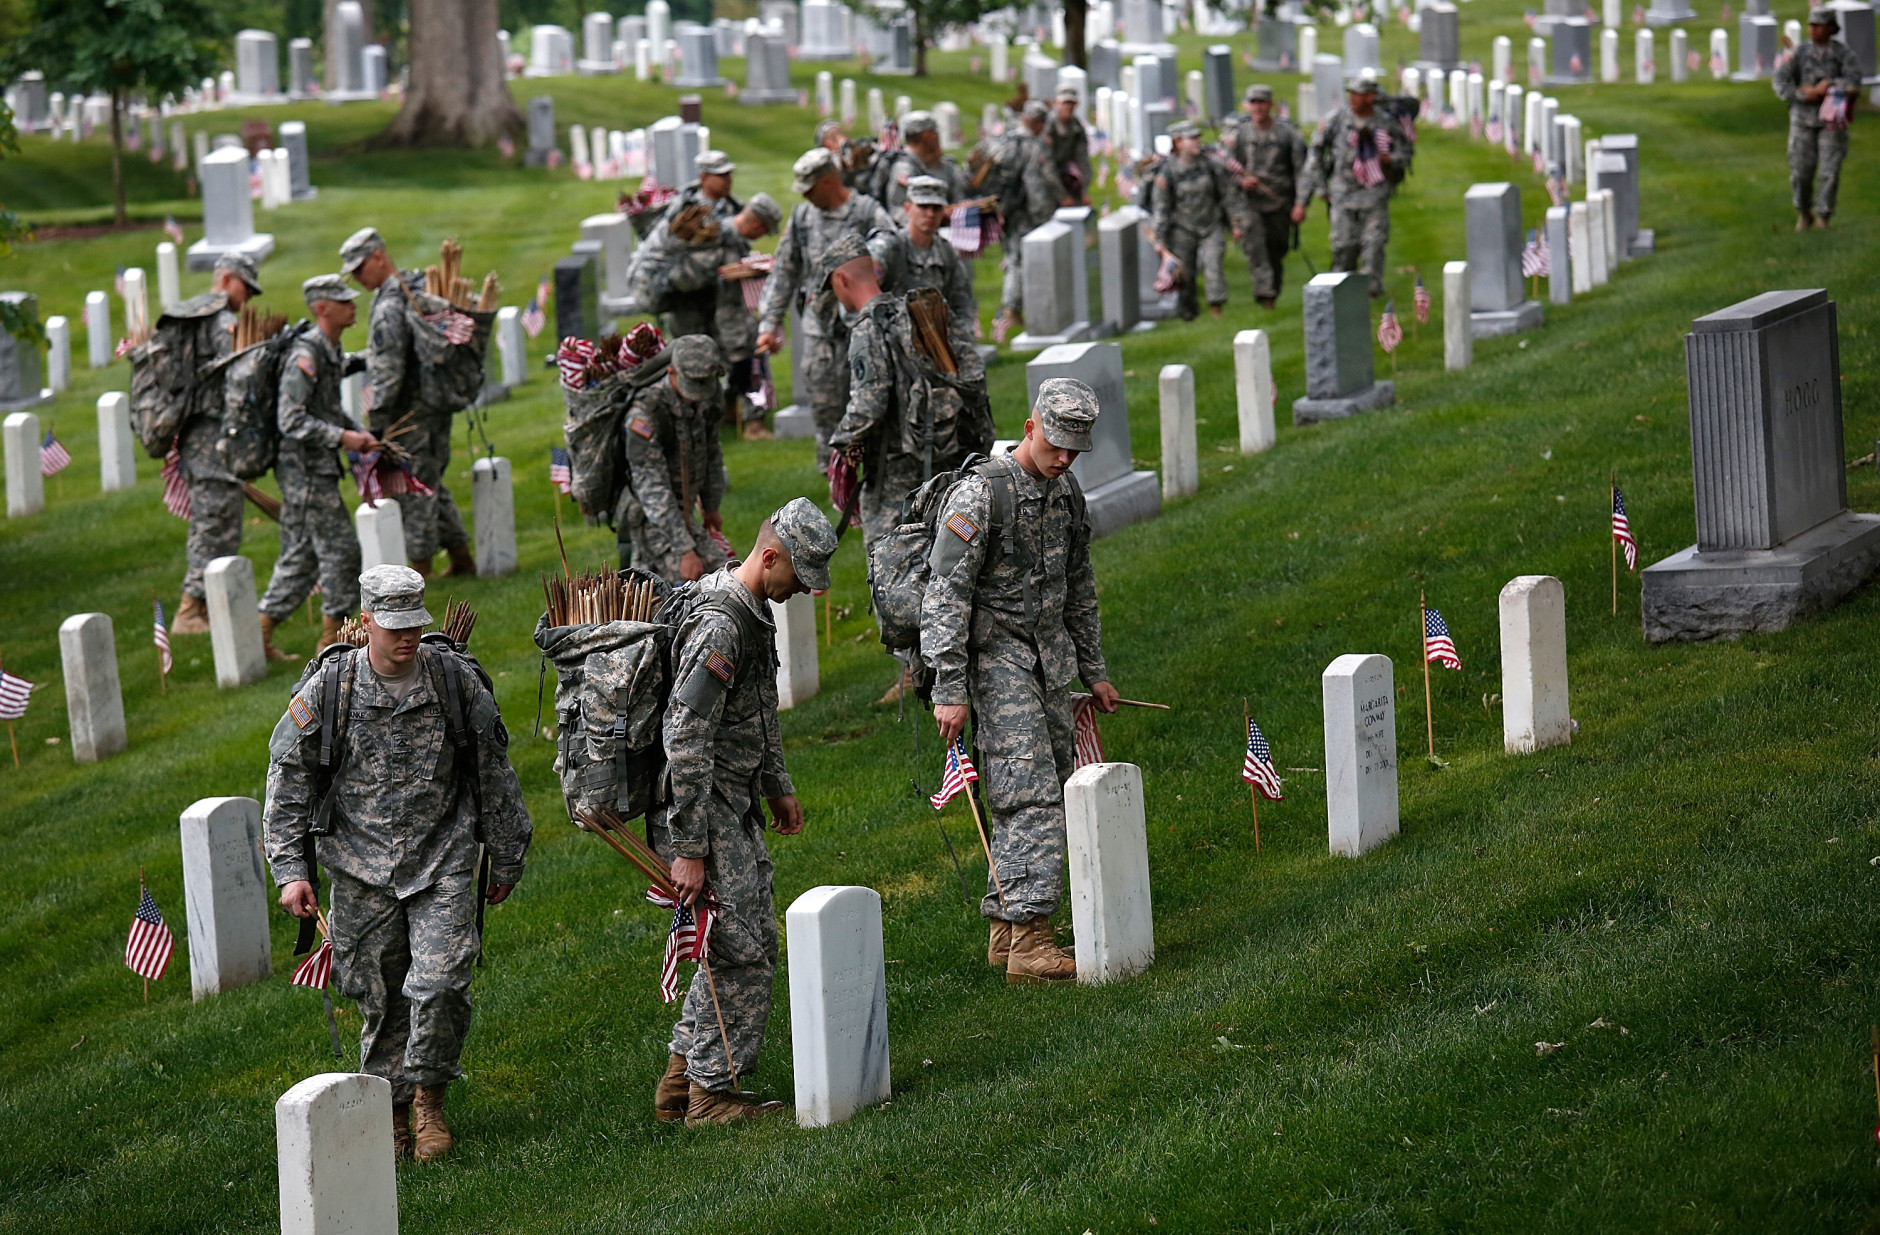 """ARLINGTON, VA - MAY 21: Members of the 3rd U.S. Infantry Regiment place American flags at the graves of U.S. soldiers buried at Arlington National Cemetery, in preparation for Memorial Day May 21, 2015 in Arlington, Virginia. """"Flags-In"""" has become an annual ceremony since the 3rd U.S. Infantry Regiment (The Old Guard) was designated to be an Army's official ceremonial unit in 1948 (Photo by Win McNamee/Getty Images)"""